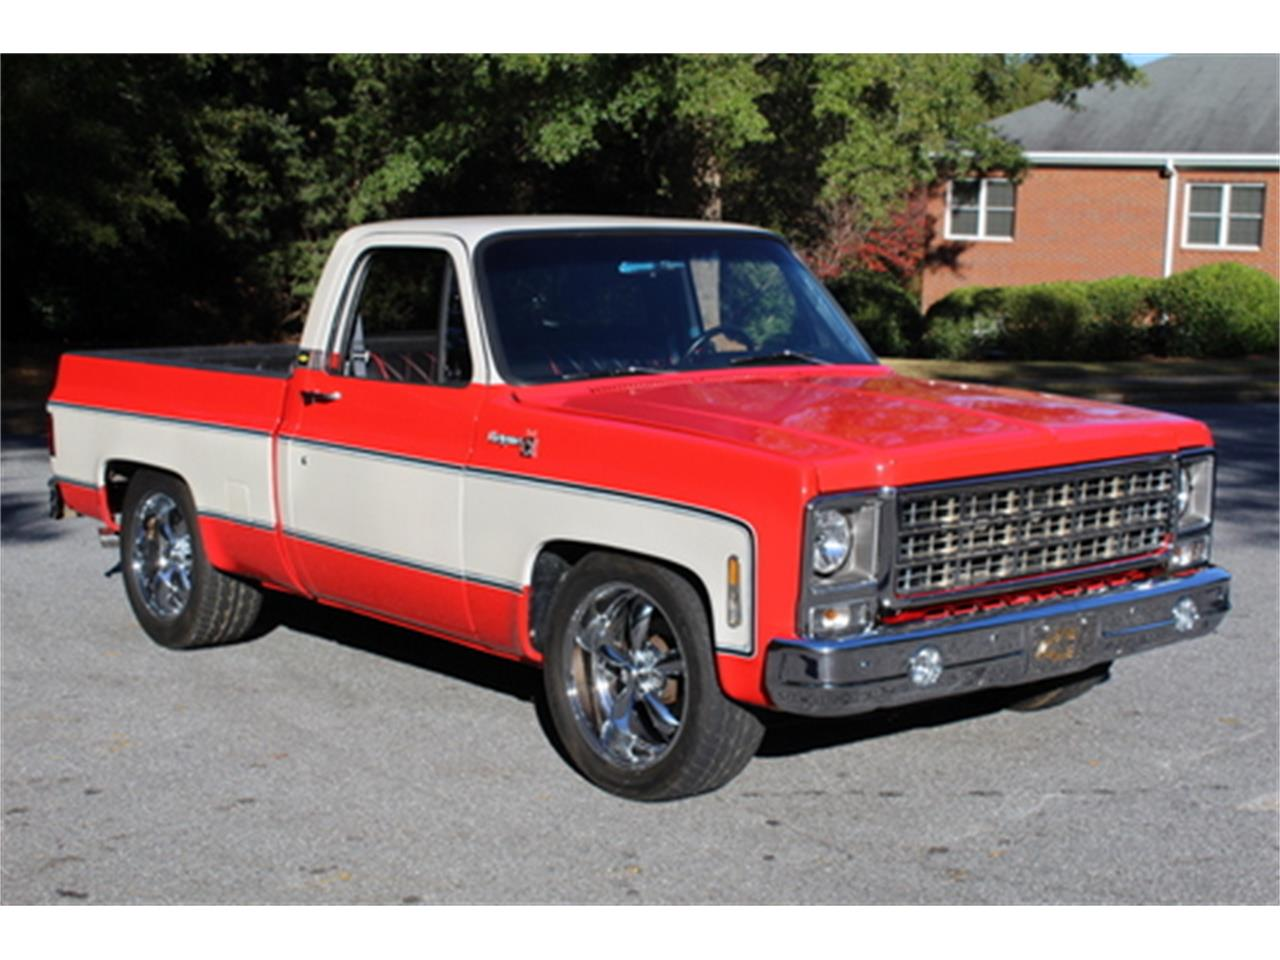 1980 chevrolet c10 for sale classiccars cc 1037880 1980 C10 Interior large picture of 80 c10 located in roswell ge ia 24 950 00 m8u0